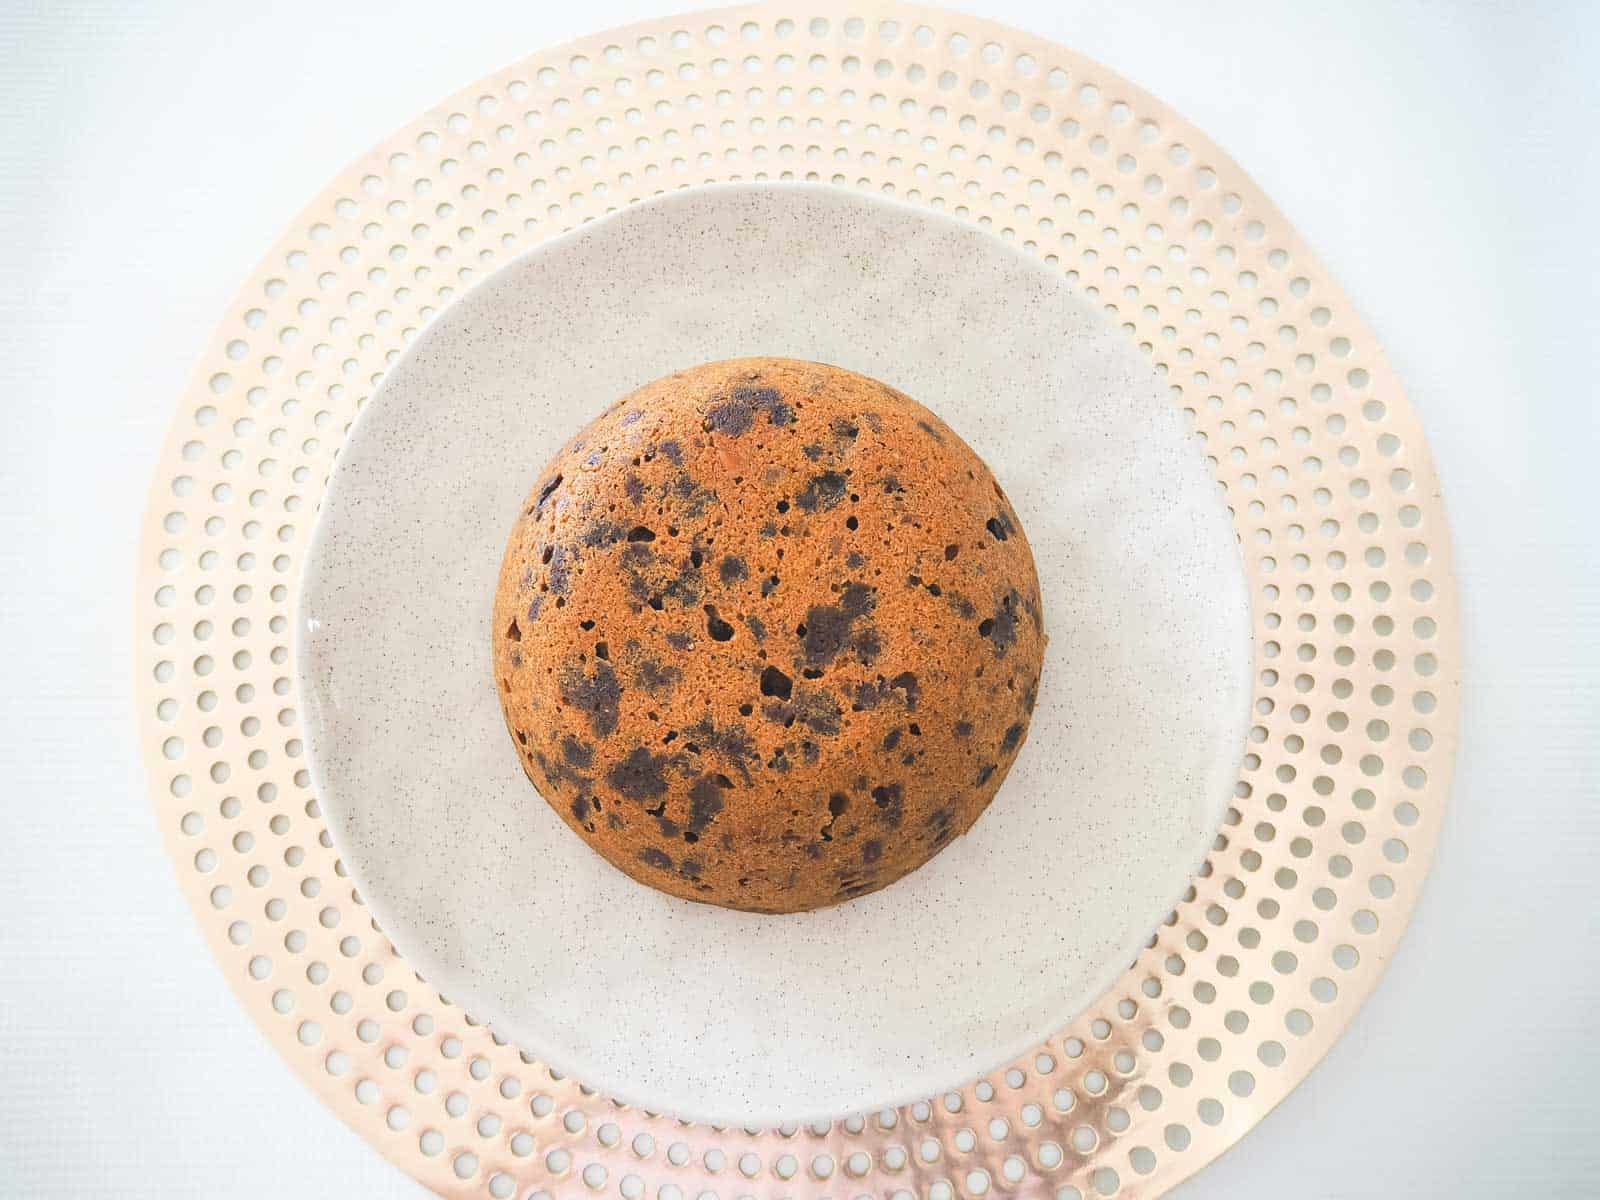 Looking down on a round Christmas pudding on a pink and white plate